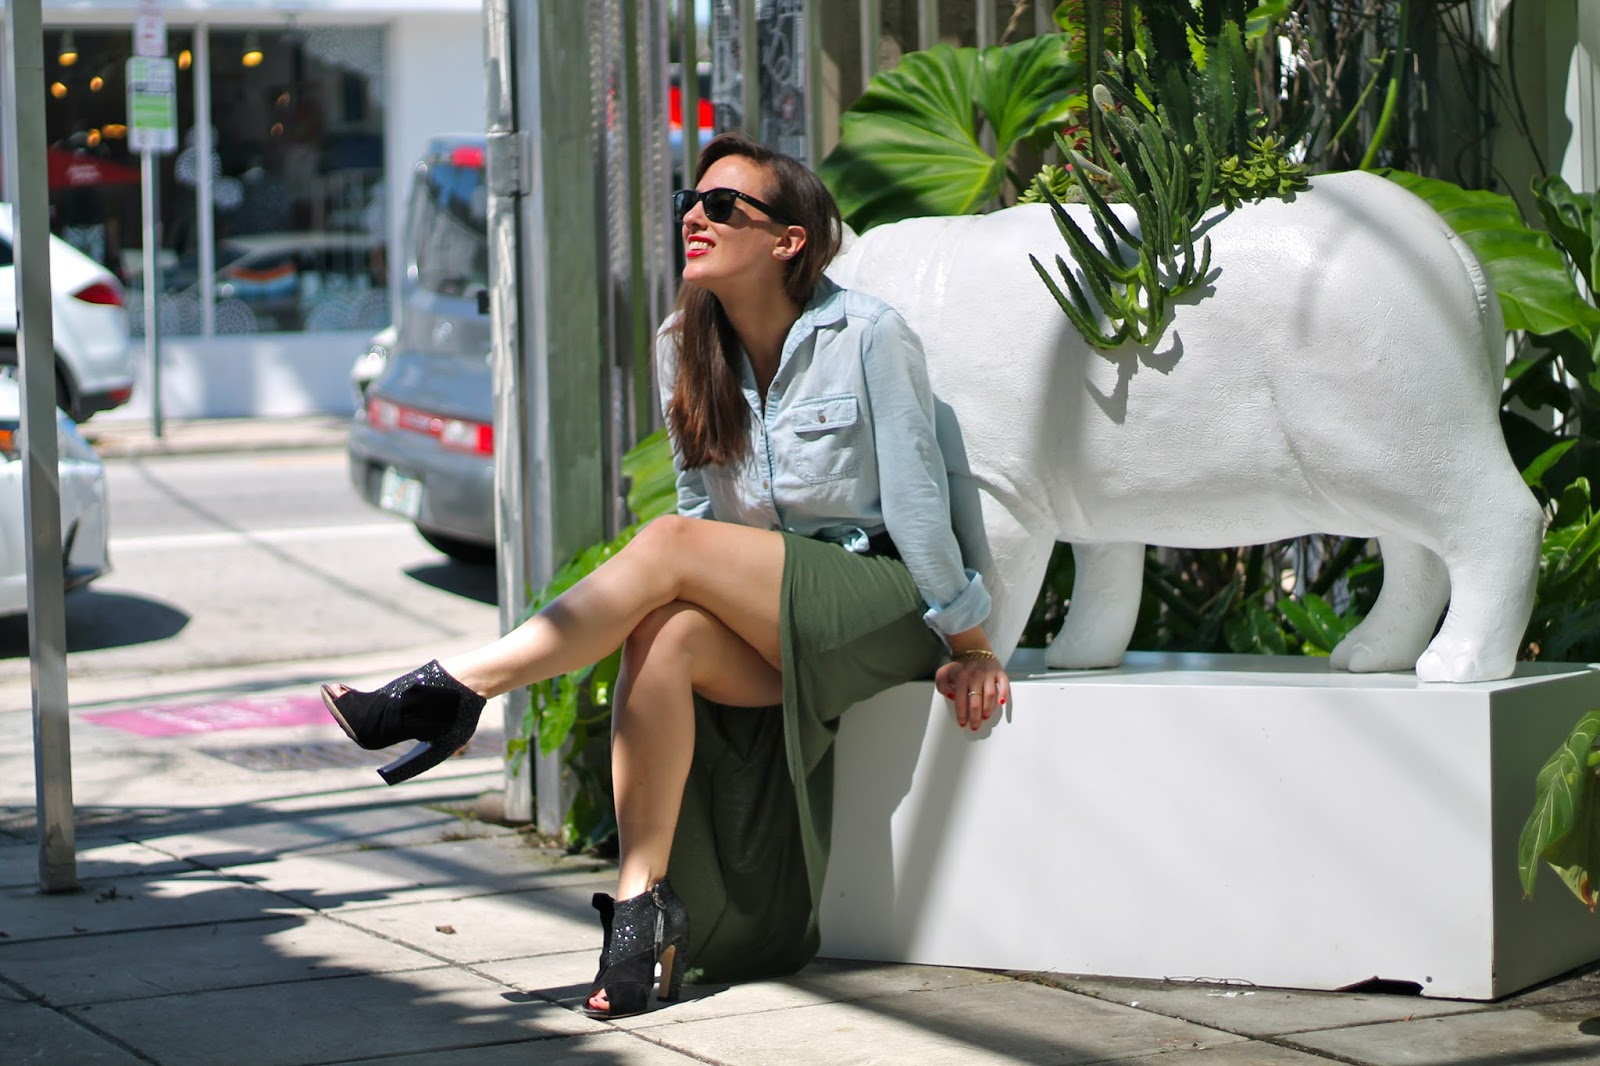 Nordstrom, Miu Miu, Kate Spade, Ray-Ban, fashion blog, fashion blogger, fall fashion, outfit ideas, fall outfits, fblogger, blogger style, Miami fashion blogger, style blog, investment pieces, capsule collection, Fall capsule